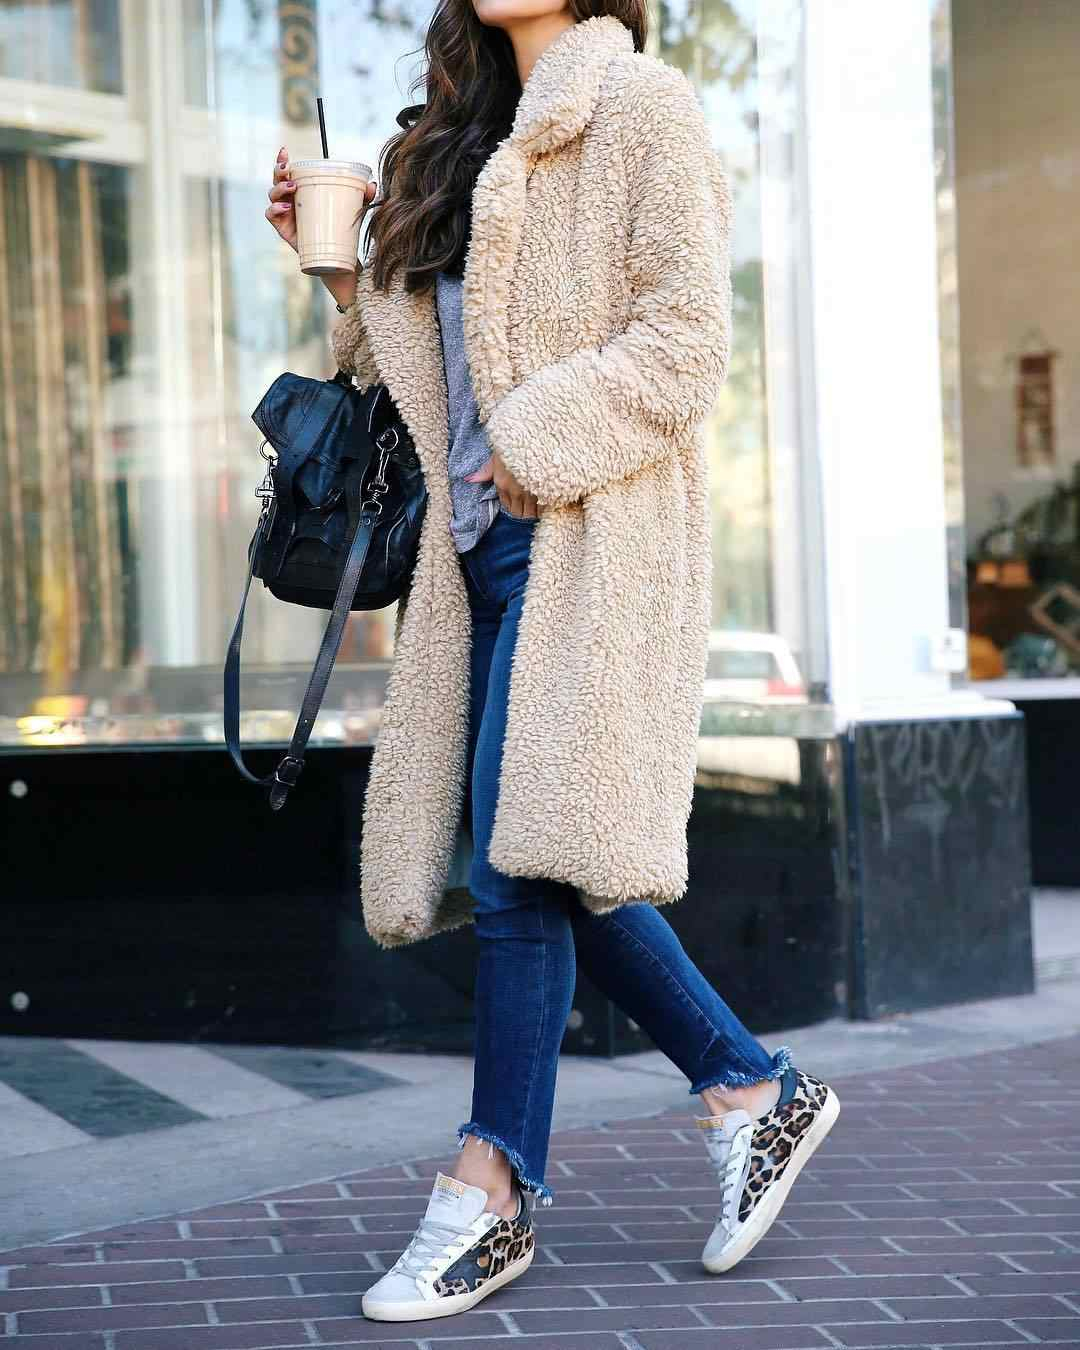 Winter Modis Women Teddy Bear Fur Coat Ladies Knee Long Jacket warm woolen blends Eleant Black Long Sleeve Coat Outwear